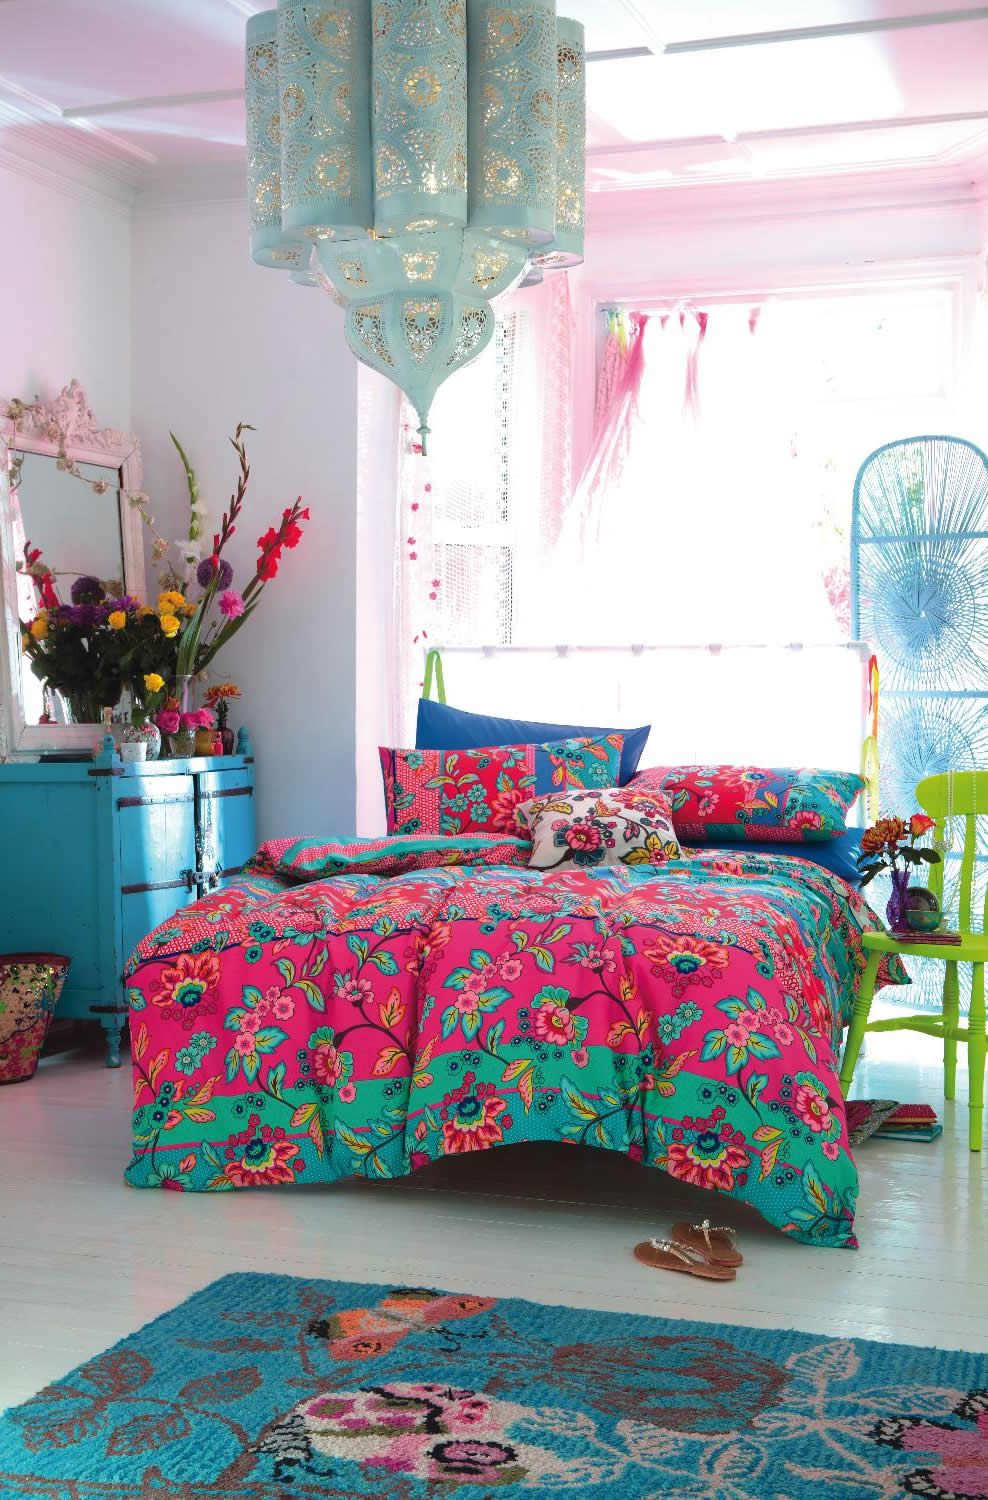 Rooms Colors Bedrooms Bright Colored Bedroom Colorful Bedroom Home Bright Colors Neon